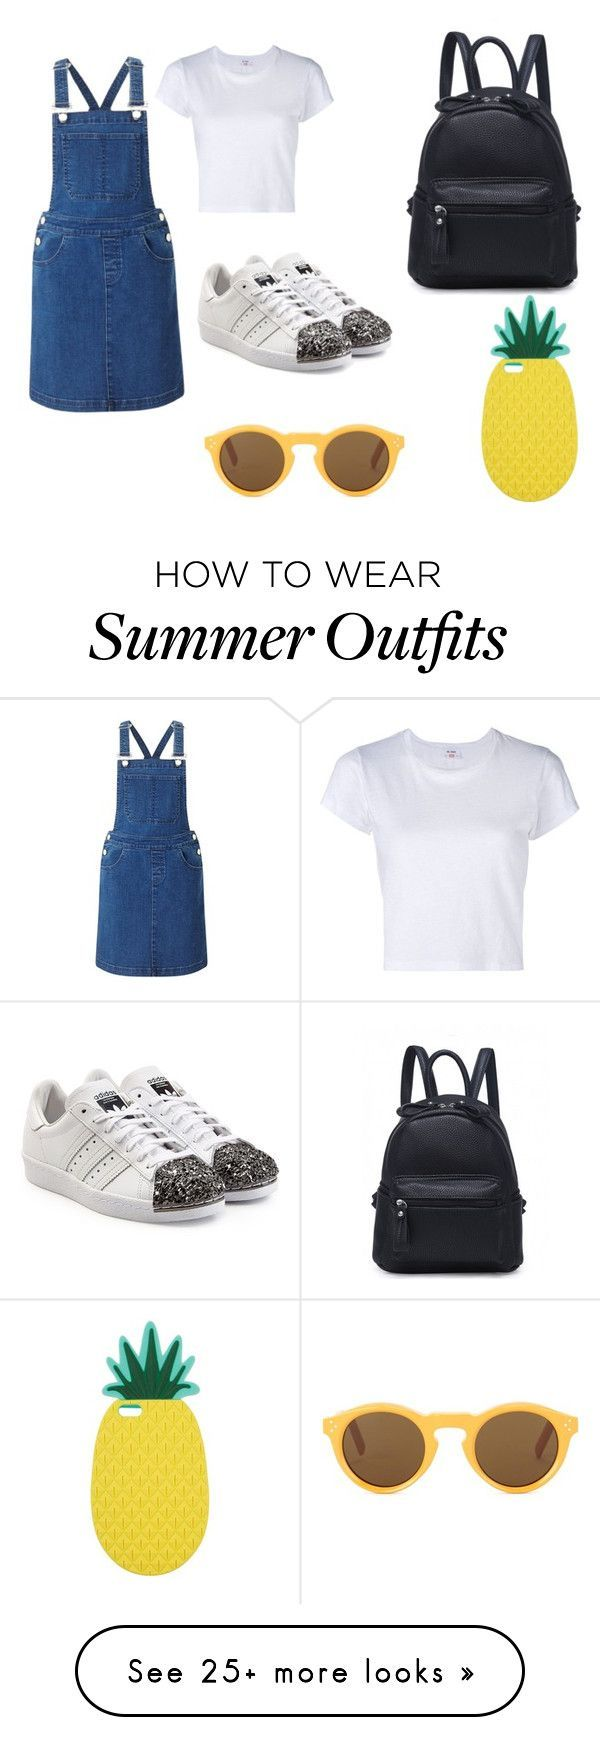 "Summer Outfits : ""Cute summer shopping outfit"" by rosiealiceneal on Polyvore featuring"